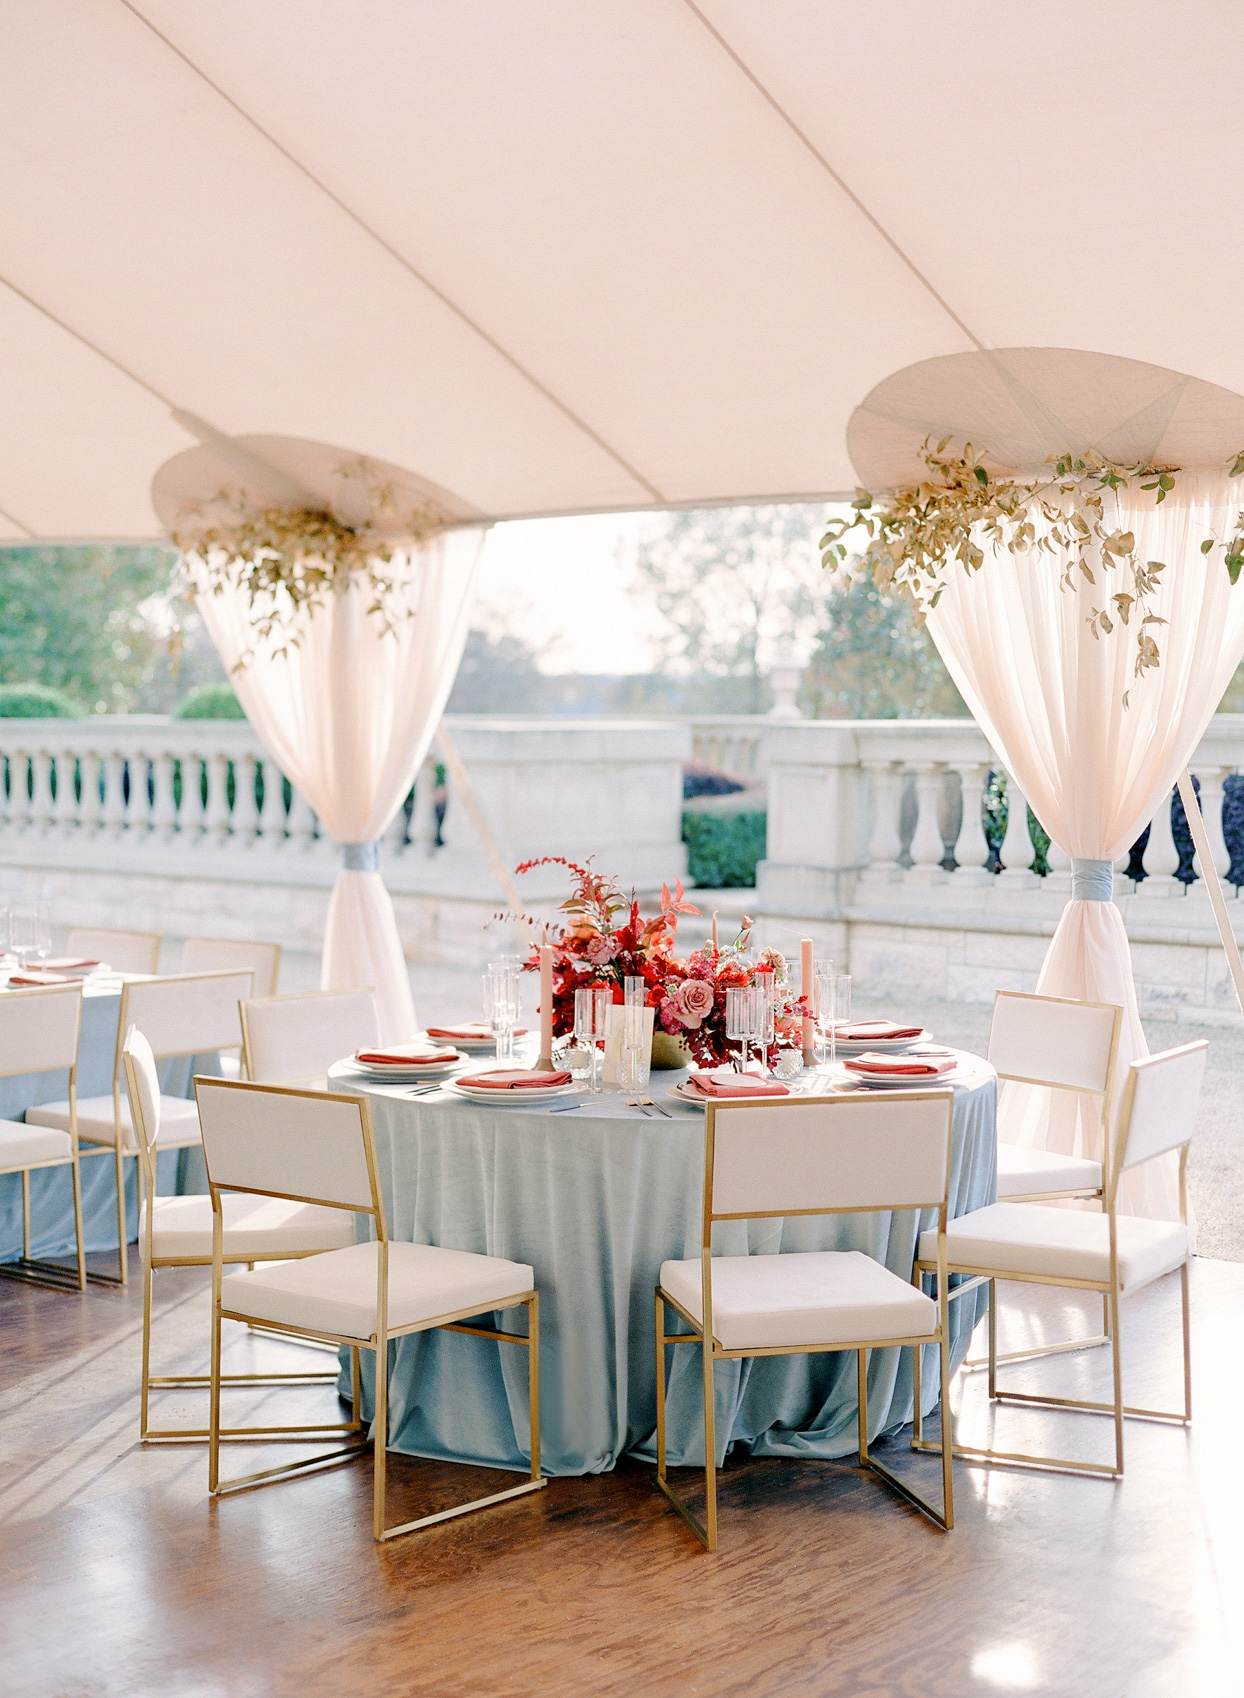 reception round tables with pale blue cloths and red flowers on patio